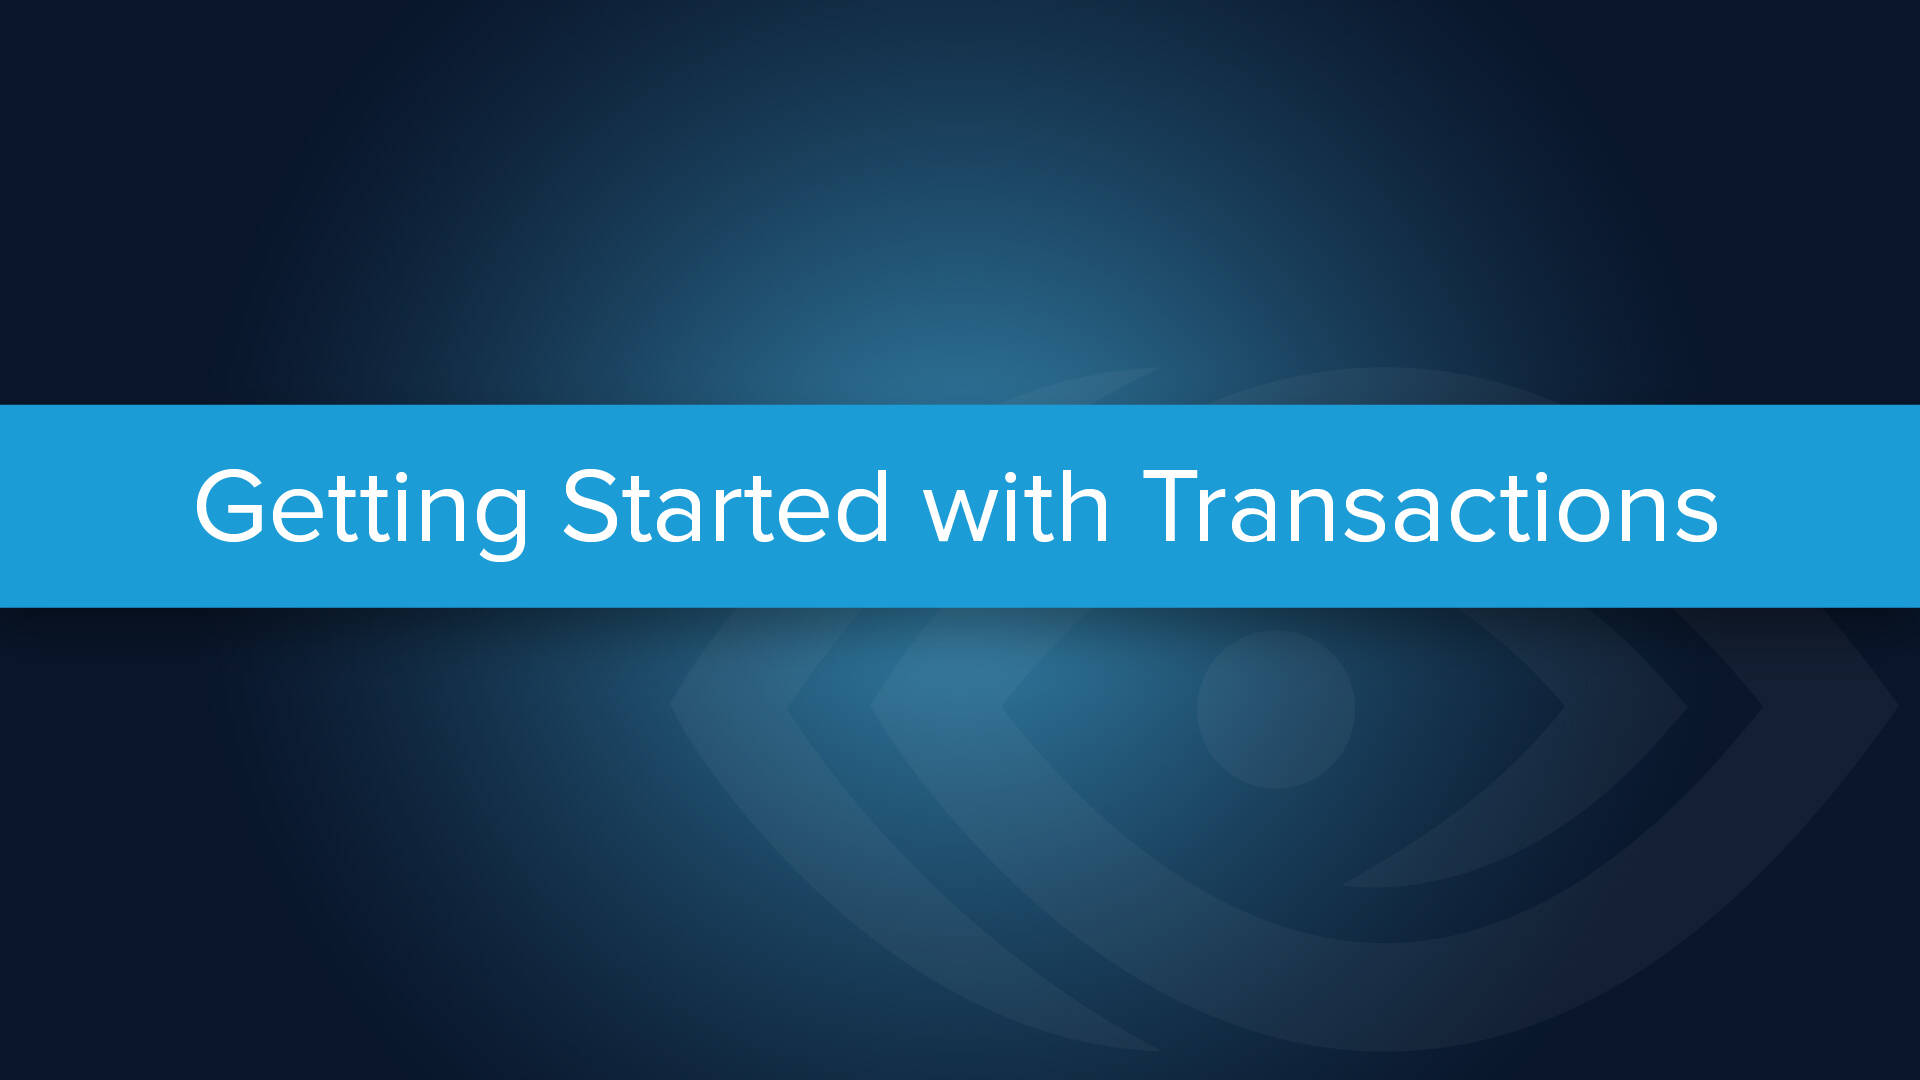 Getting Started with Transactions